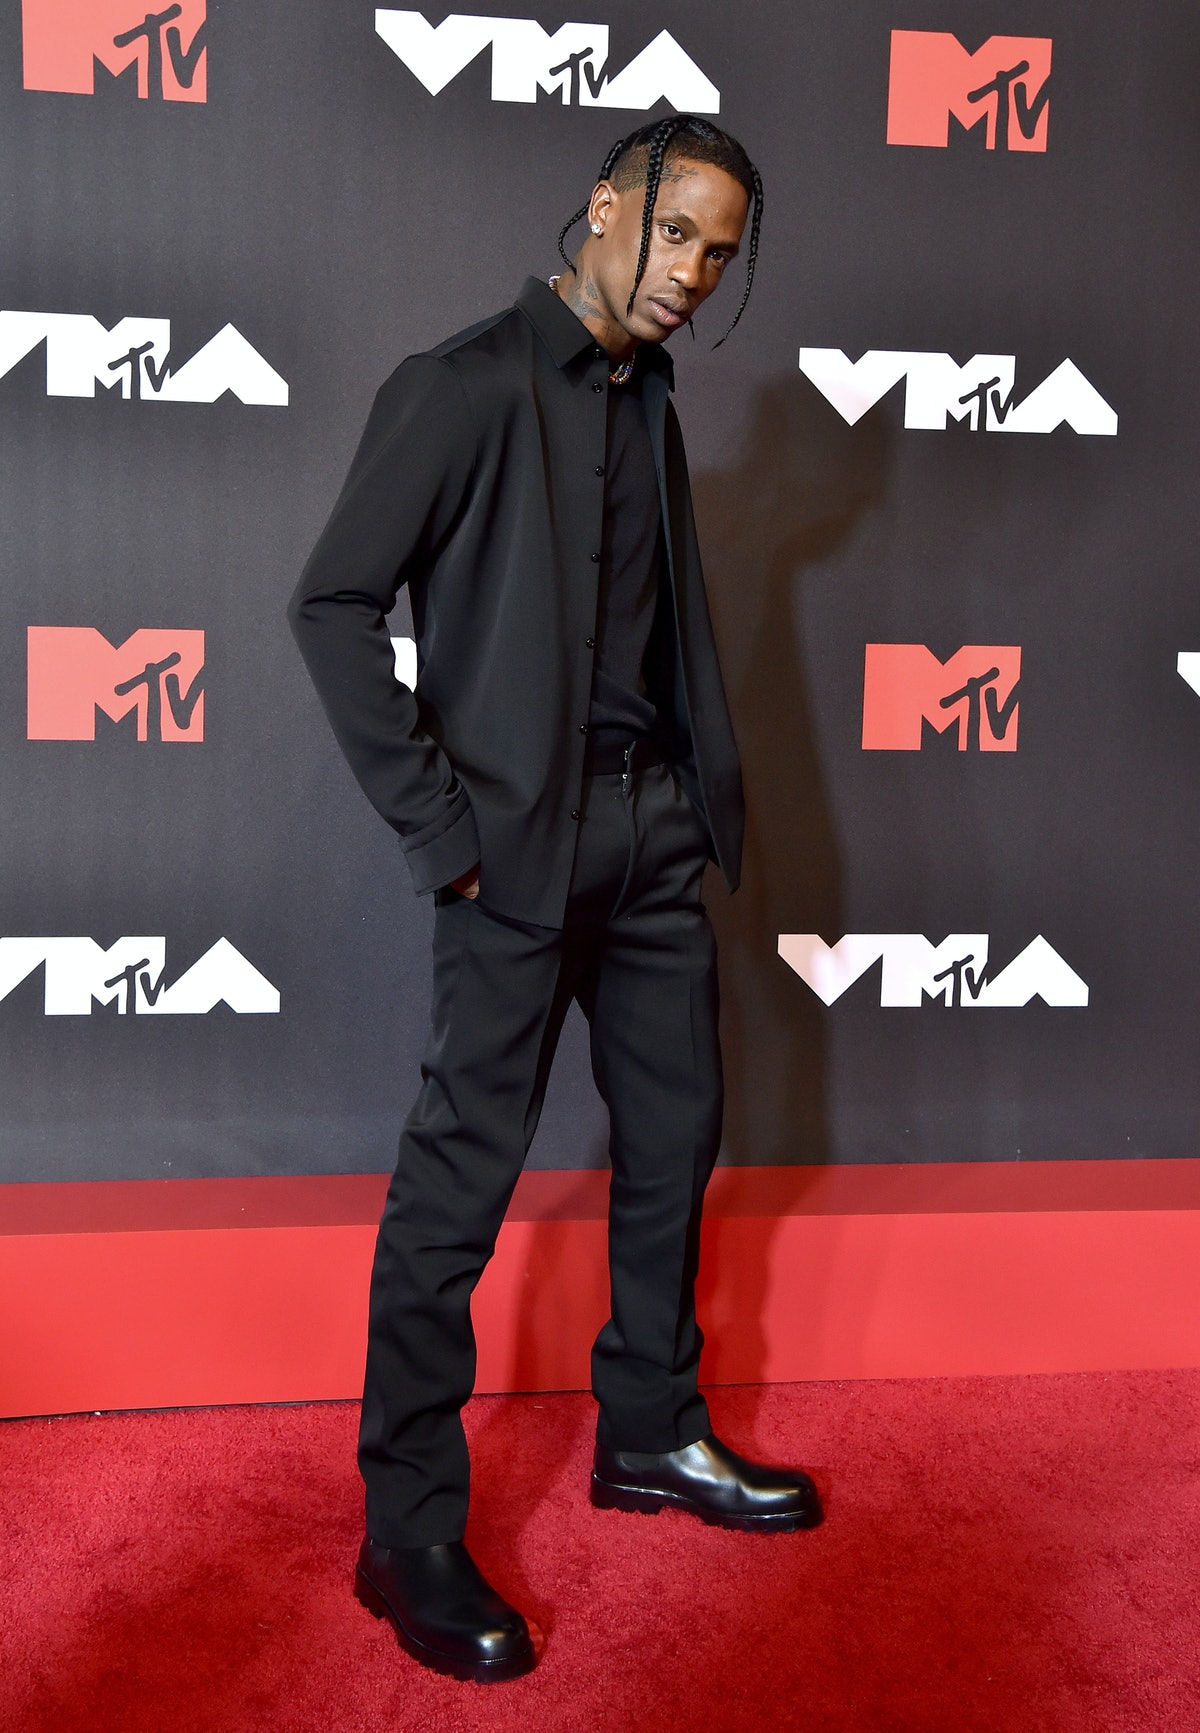 Travis Scott attends the 2021 MTV Video Music Awards at Barclays Center on September 12, 2021 in the...